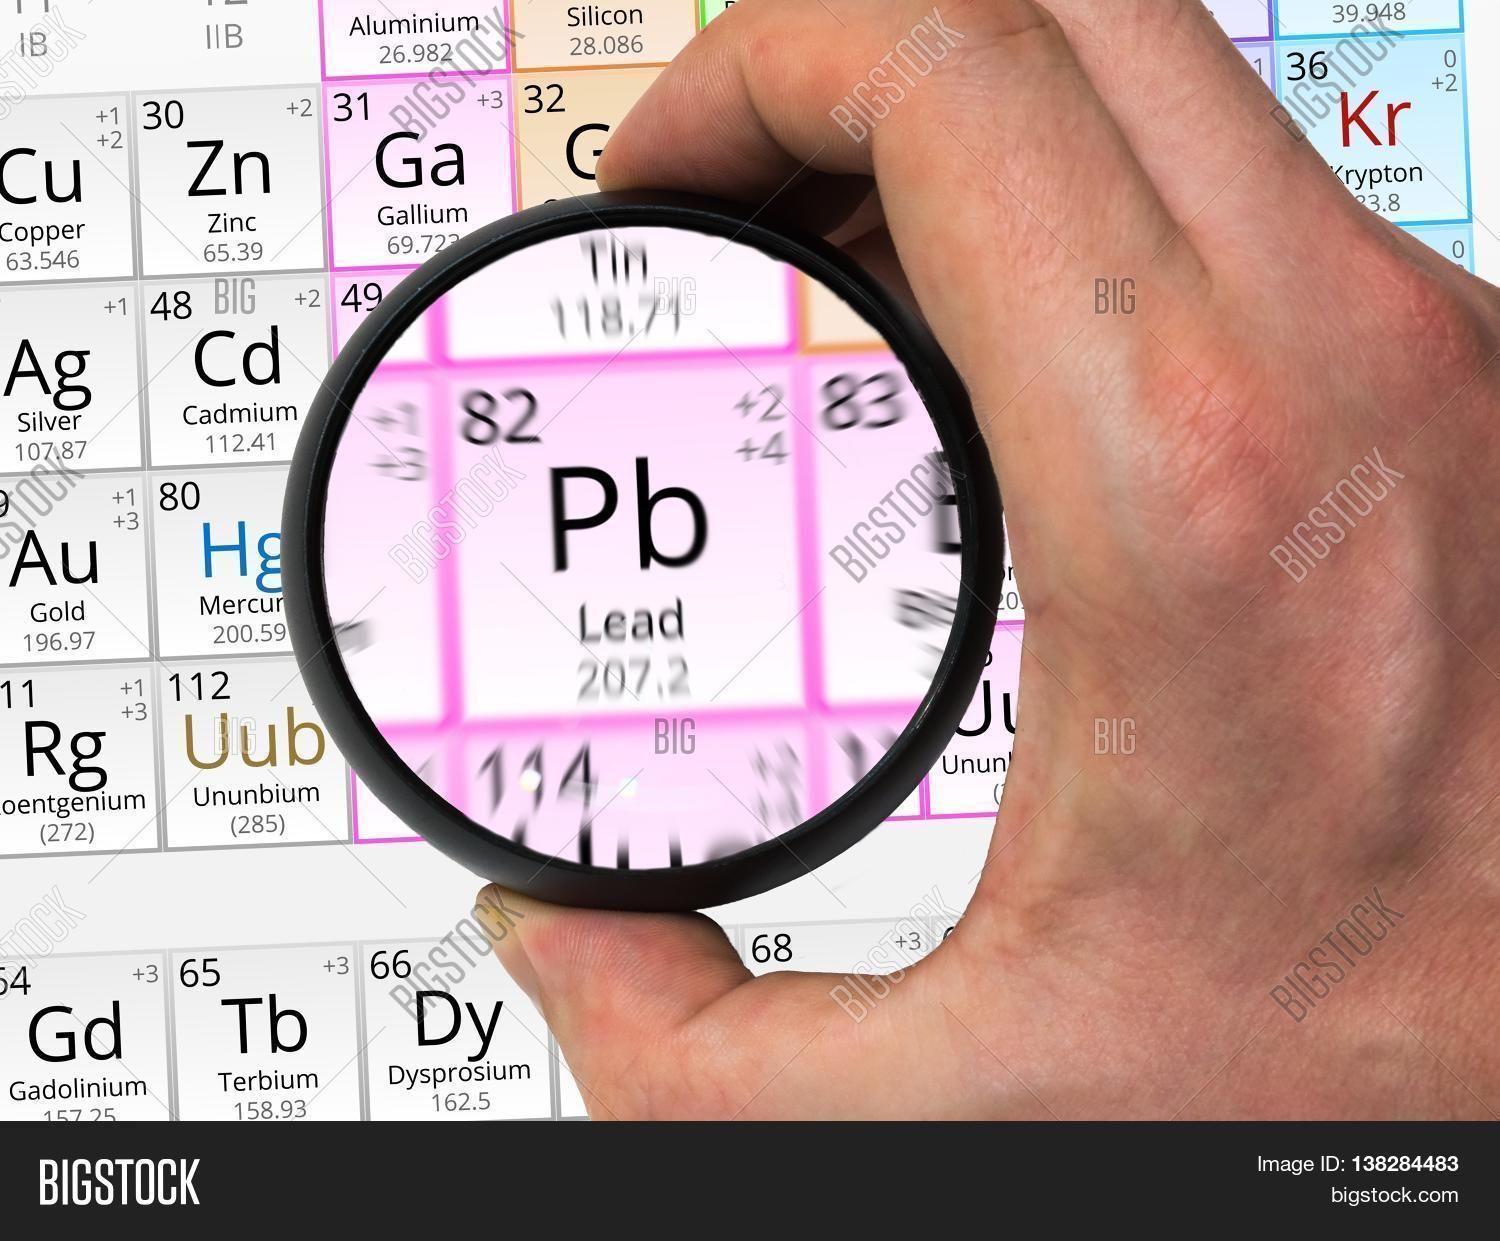 Lead symbol pb element periodic image photo bigstock lead symbol pb element of the periodic table zoomed with magn urtaz Image collections